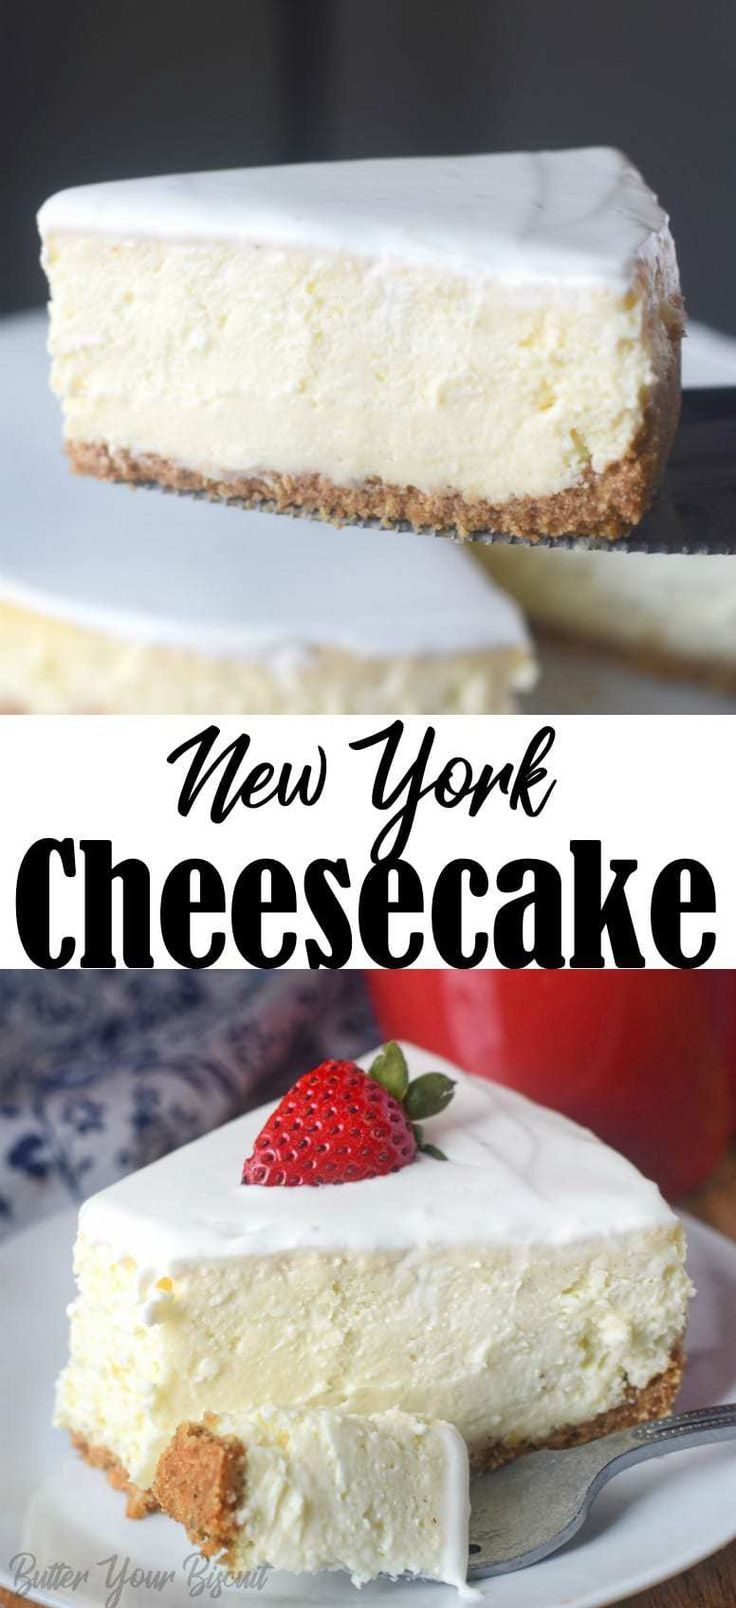 Cheesecake Crust Desserts In 2020 Easy Cheesecake Recipes Sour Cream Recipes Savoury Cake